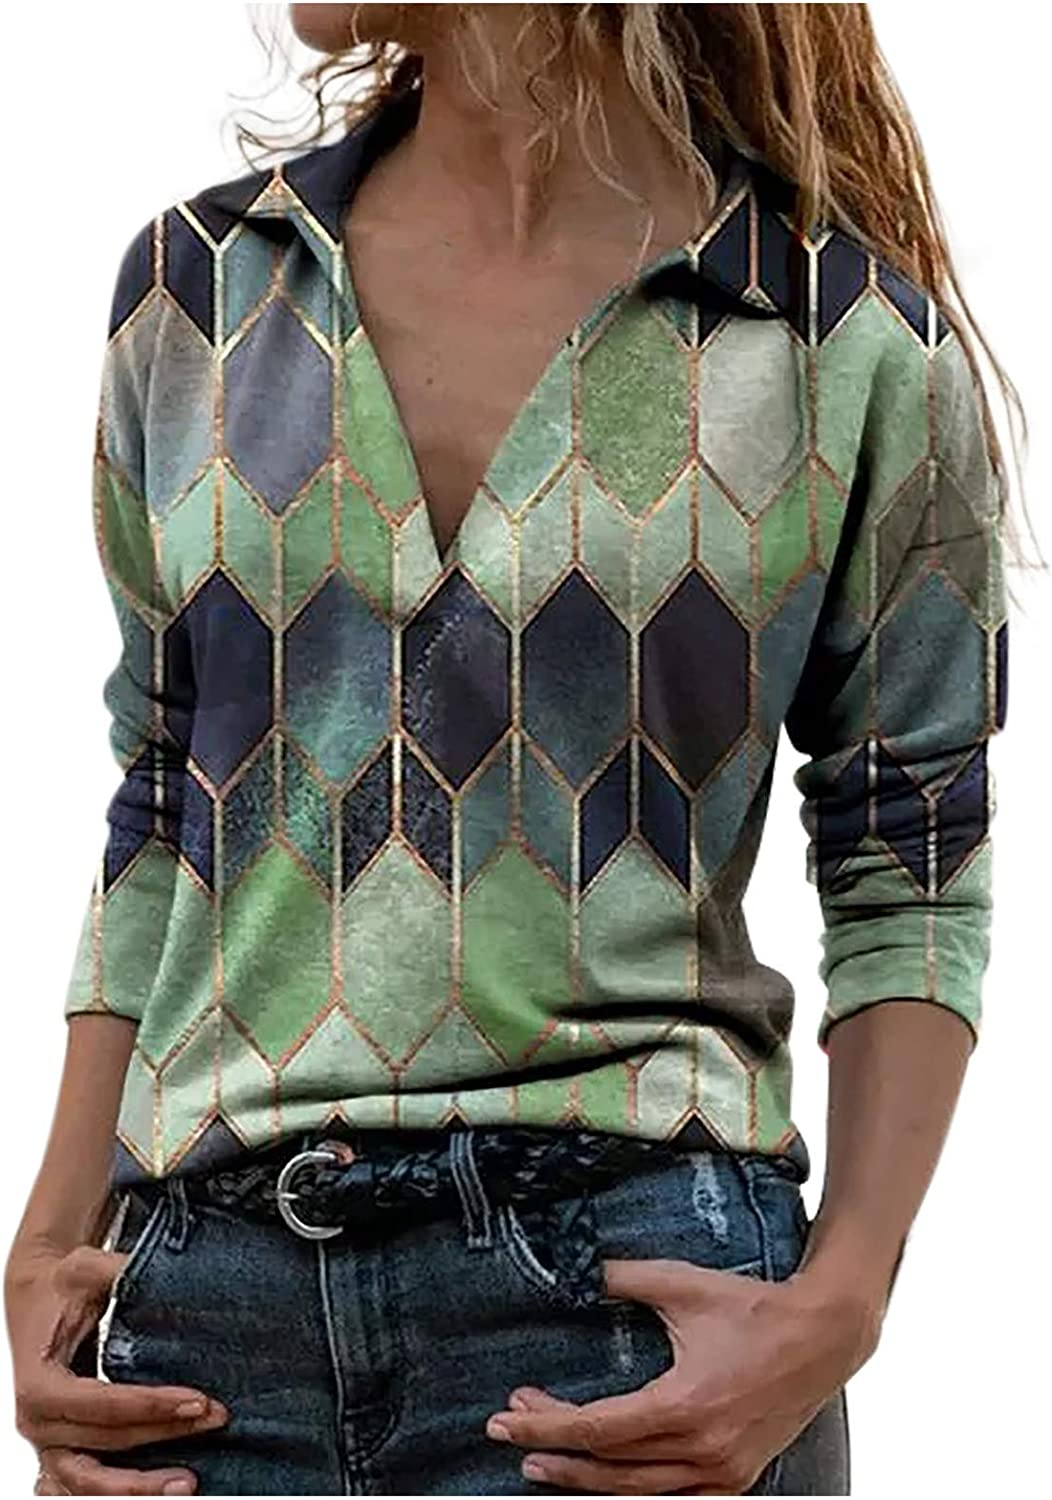 Summer Tops for Women Dressy,Womens V-Neck Long Sleeve Casual Geometric Printed T-Shirts Pullover Henley Shirts